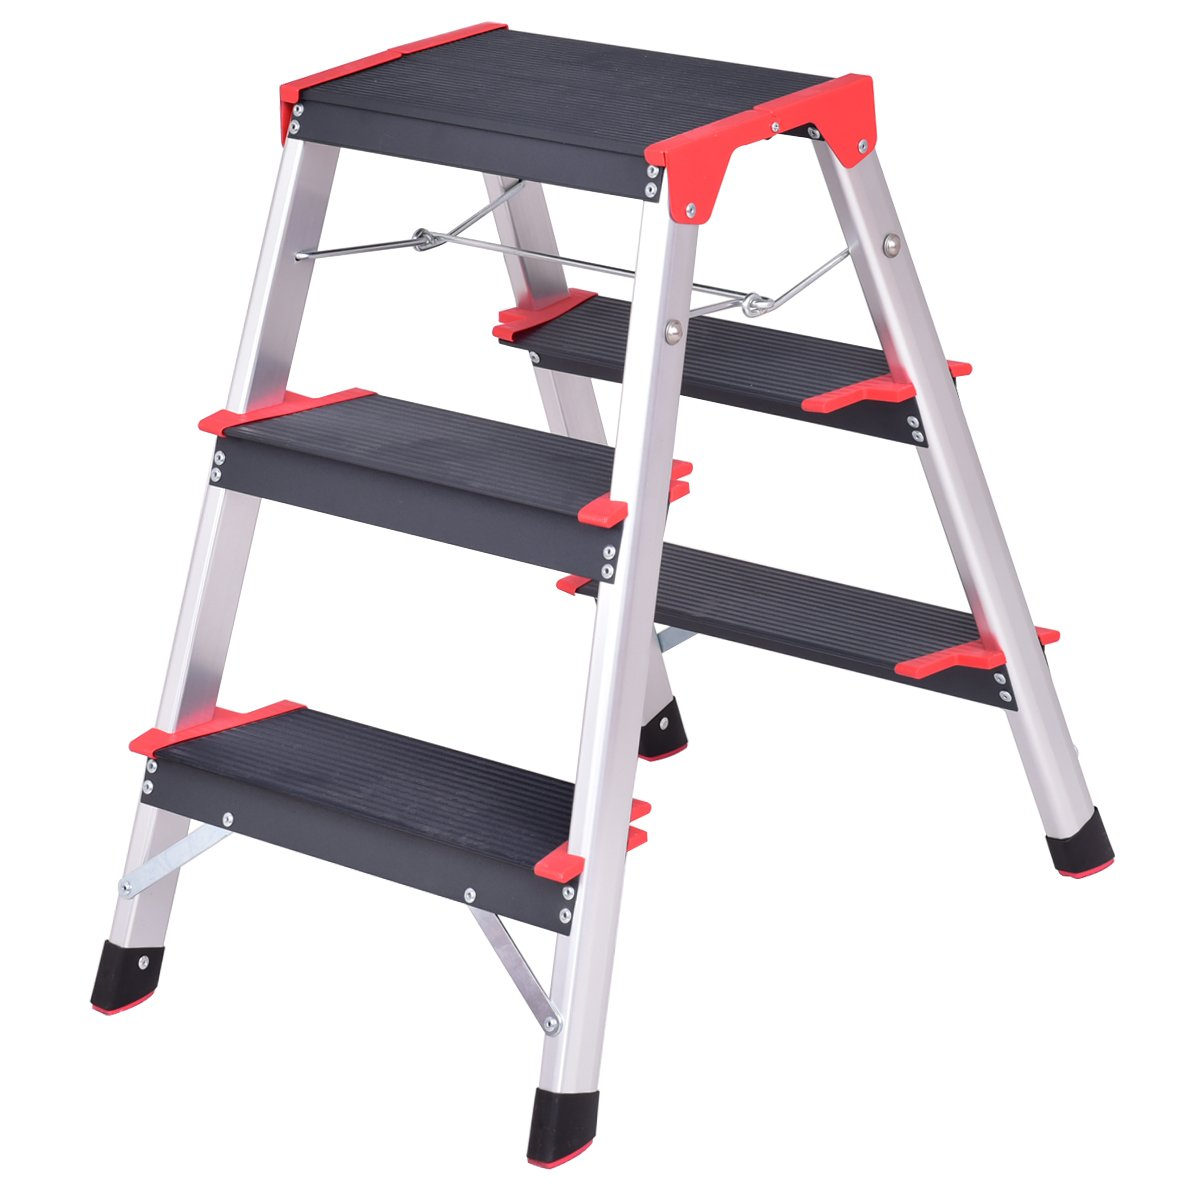 Giantex Aluminum 3 Step Ladder Folding Non-Slip Lightweight 330lbs Capacity Platform Stool